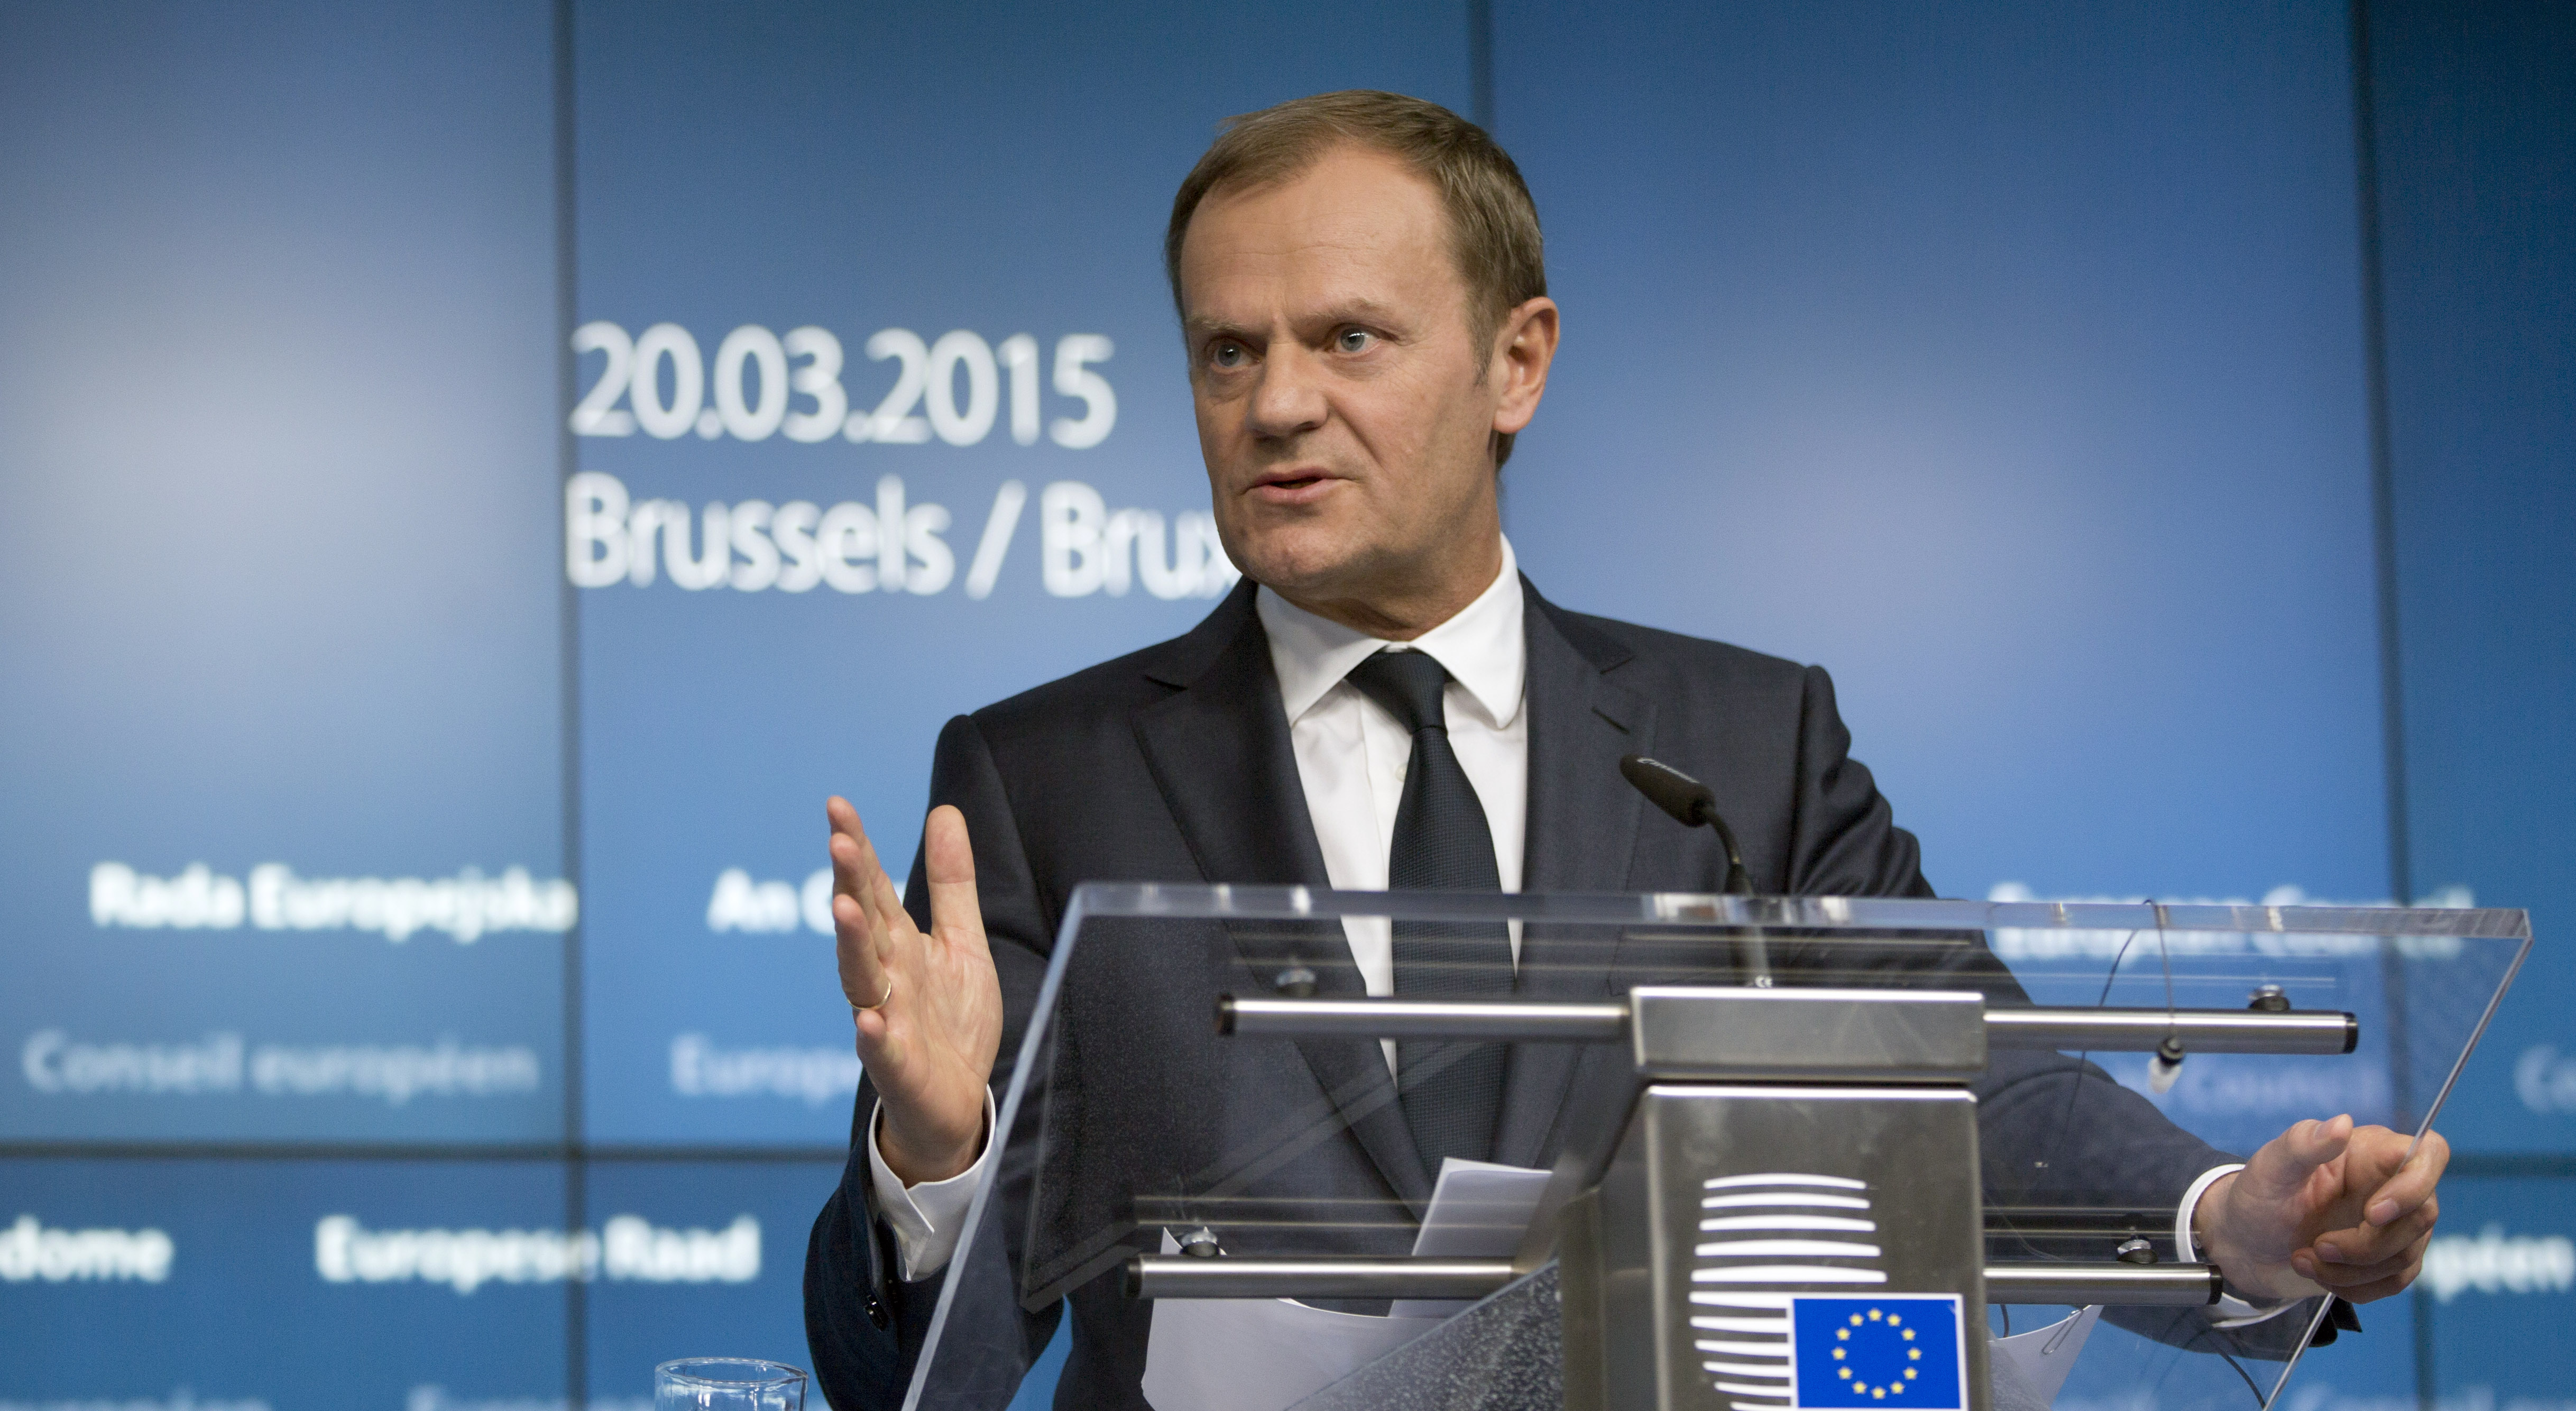 European Council President Donald Tusk speaks during a media conference at an EU summit in Brussels March 20, 2015.